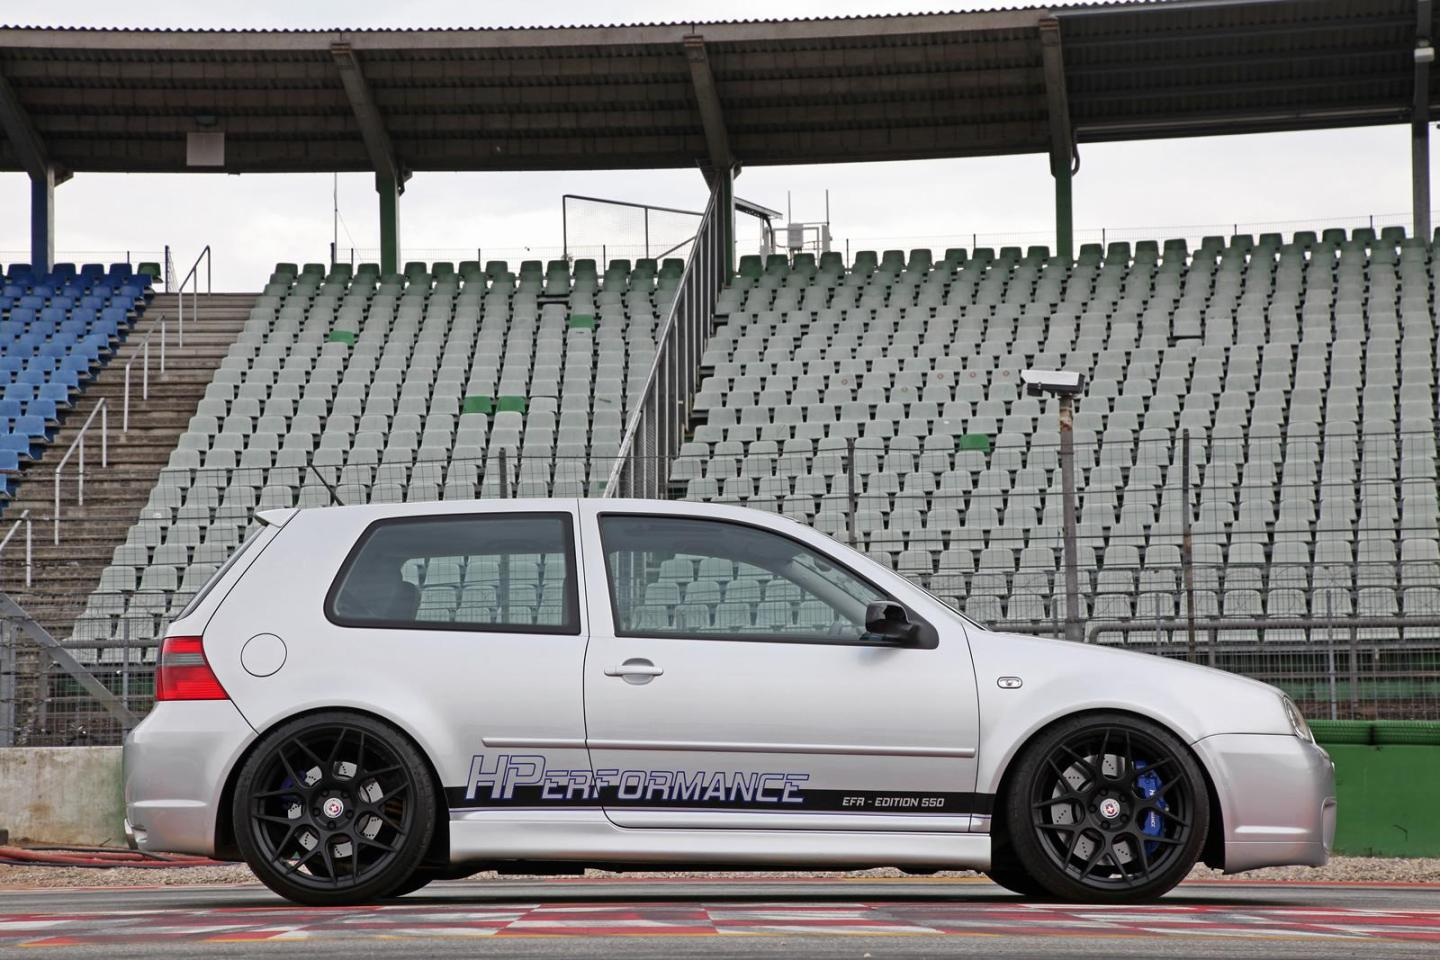 Vw_Golf_IV_R32_HPerformance_3